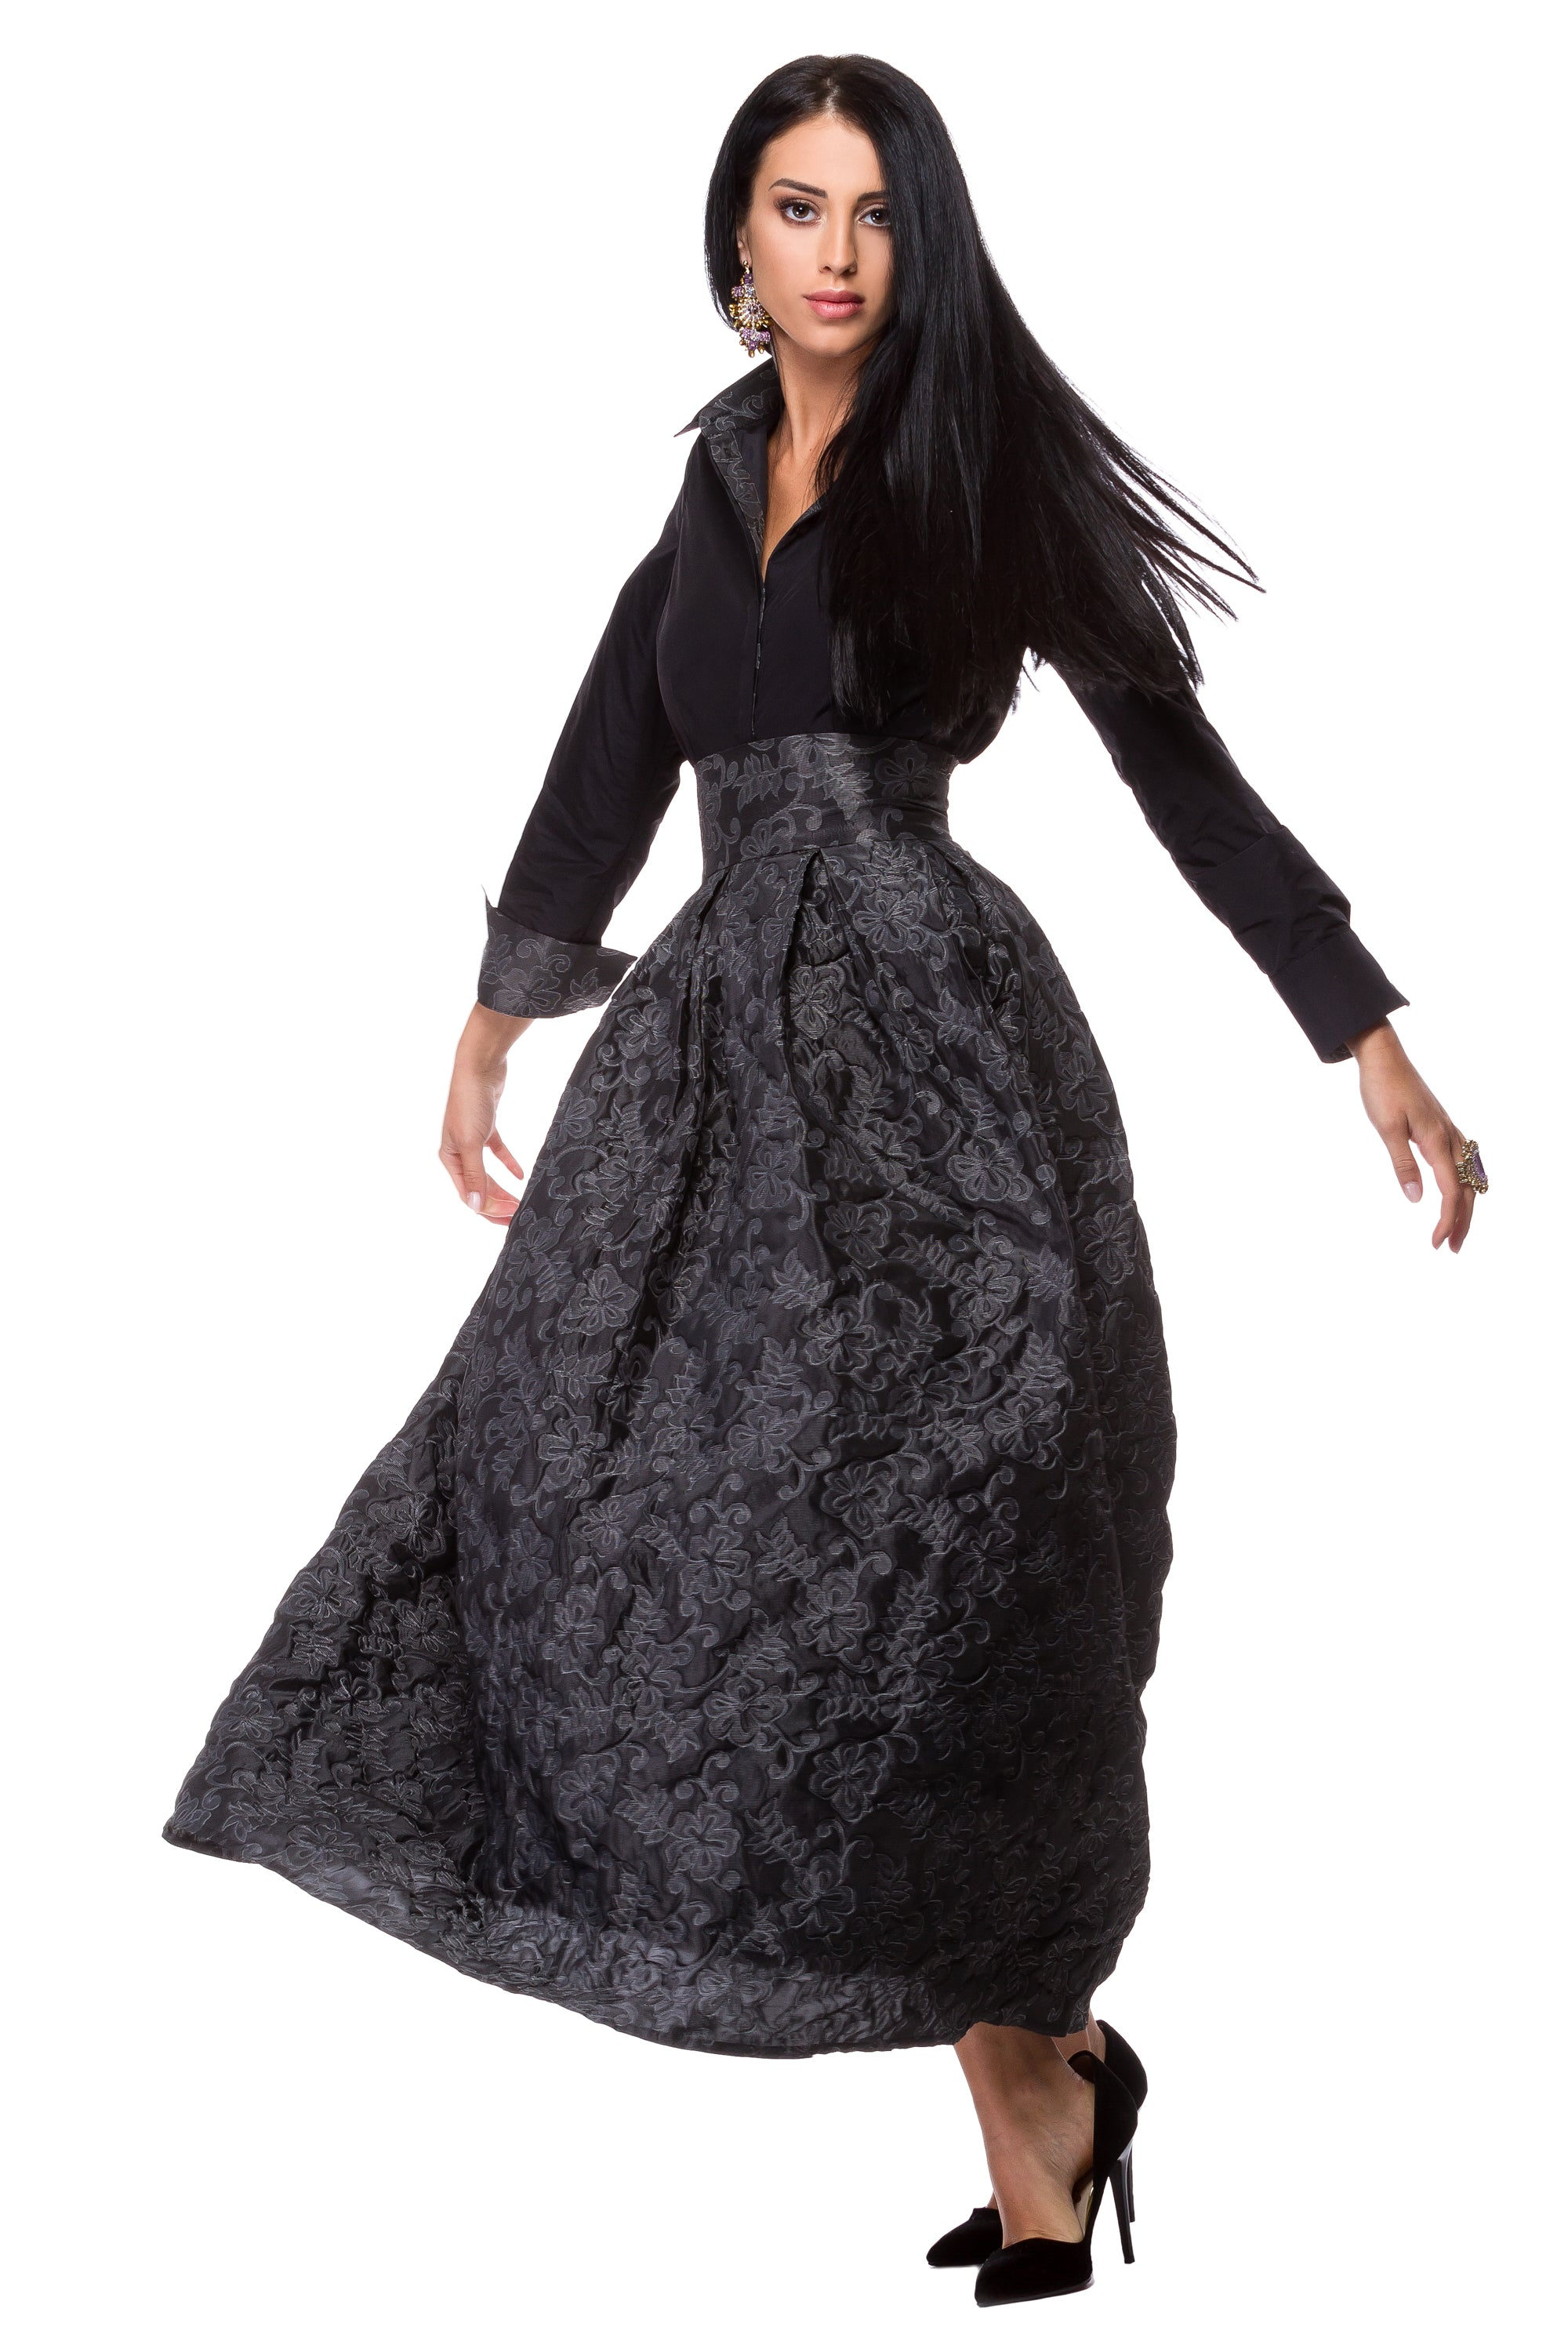 Black taffeta shirt with gray floral lining WSH-0007